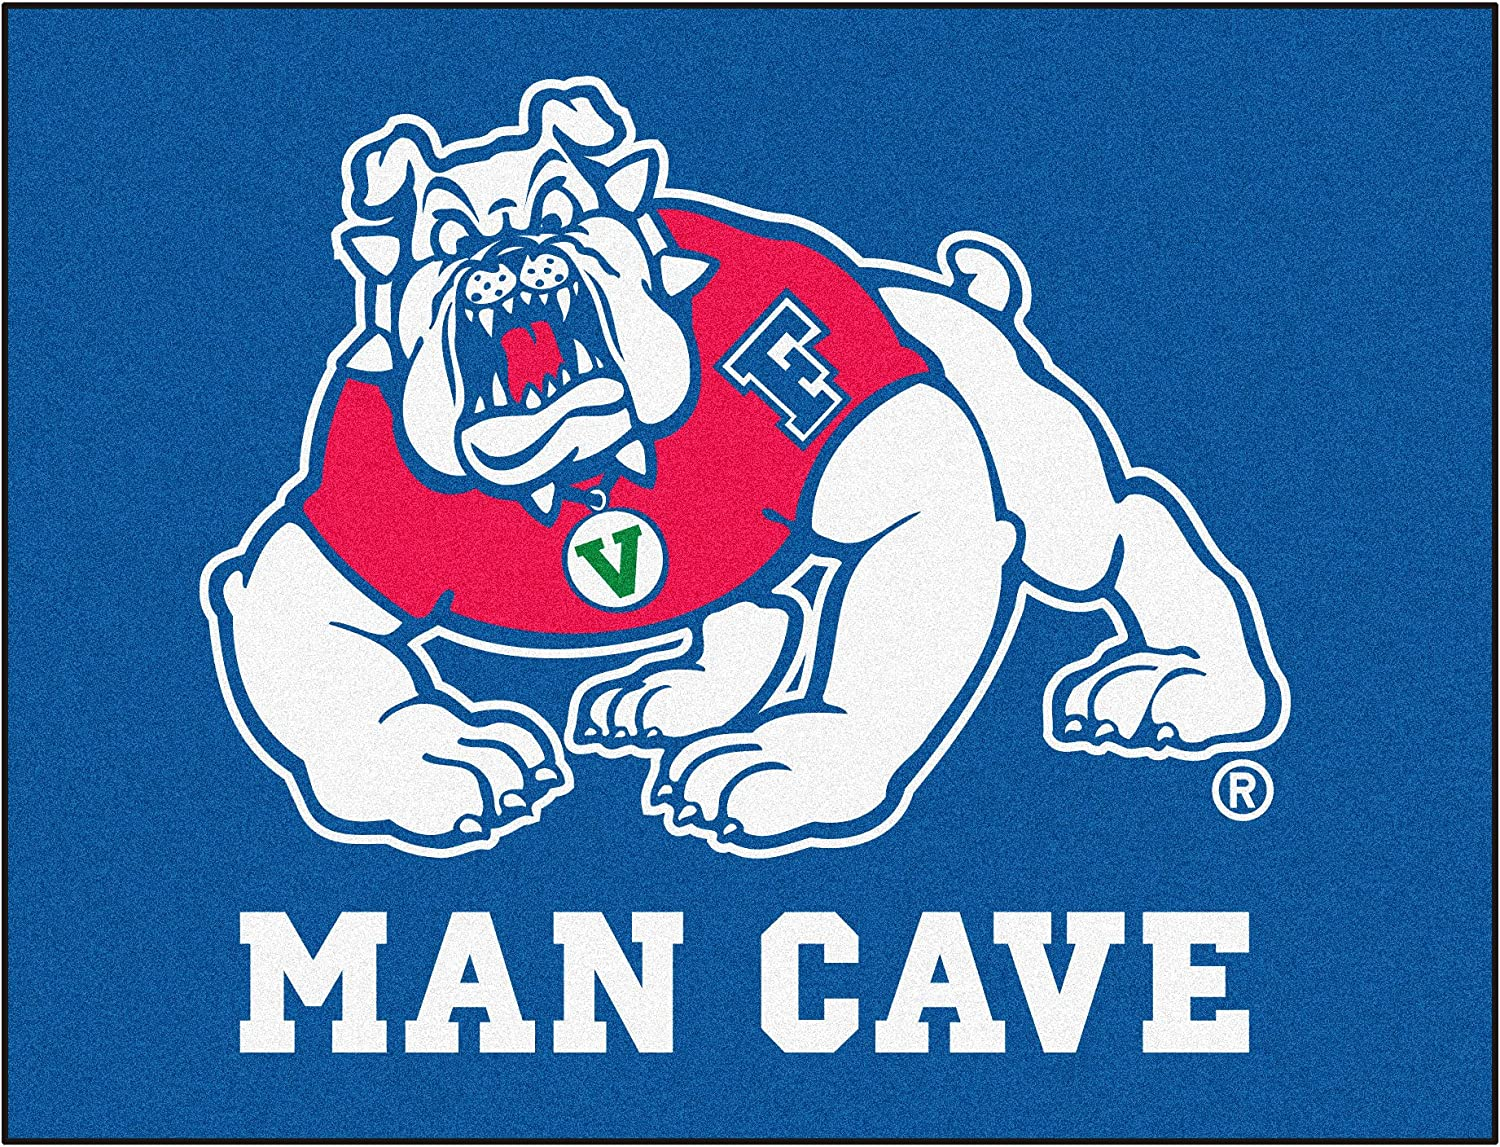 FANMATS 17262 Team Color 33.75x42.5 Fresno State Man Cave All-Star Mat